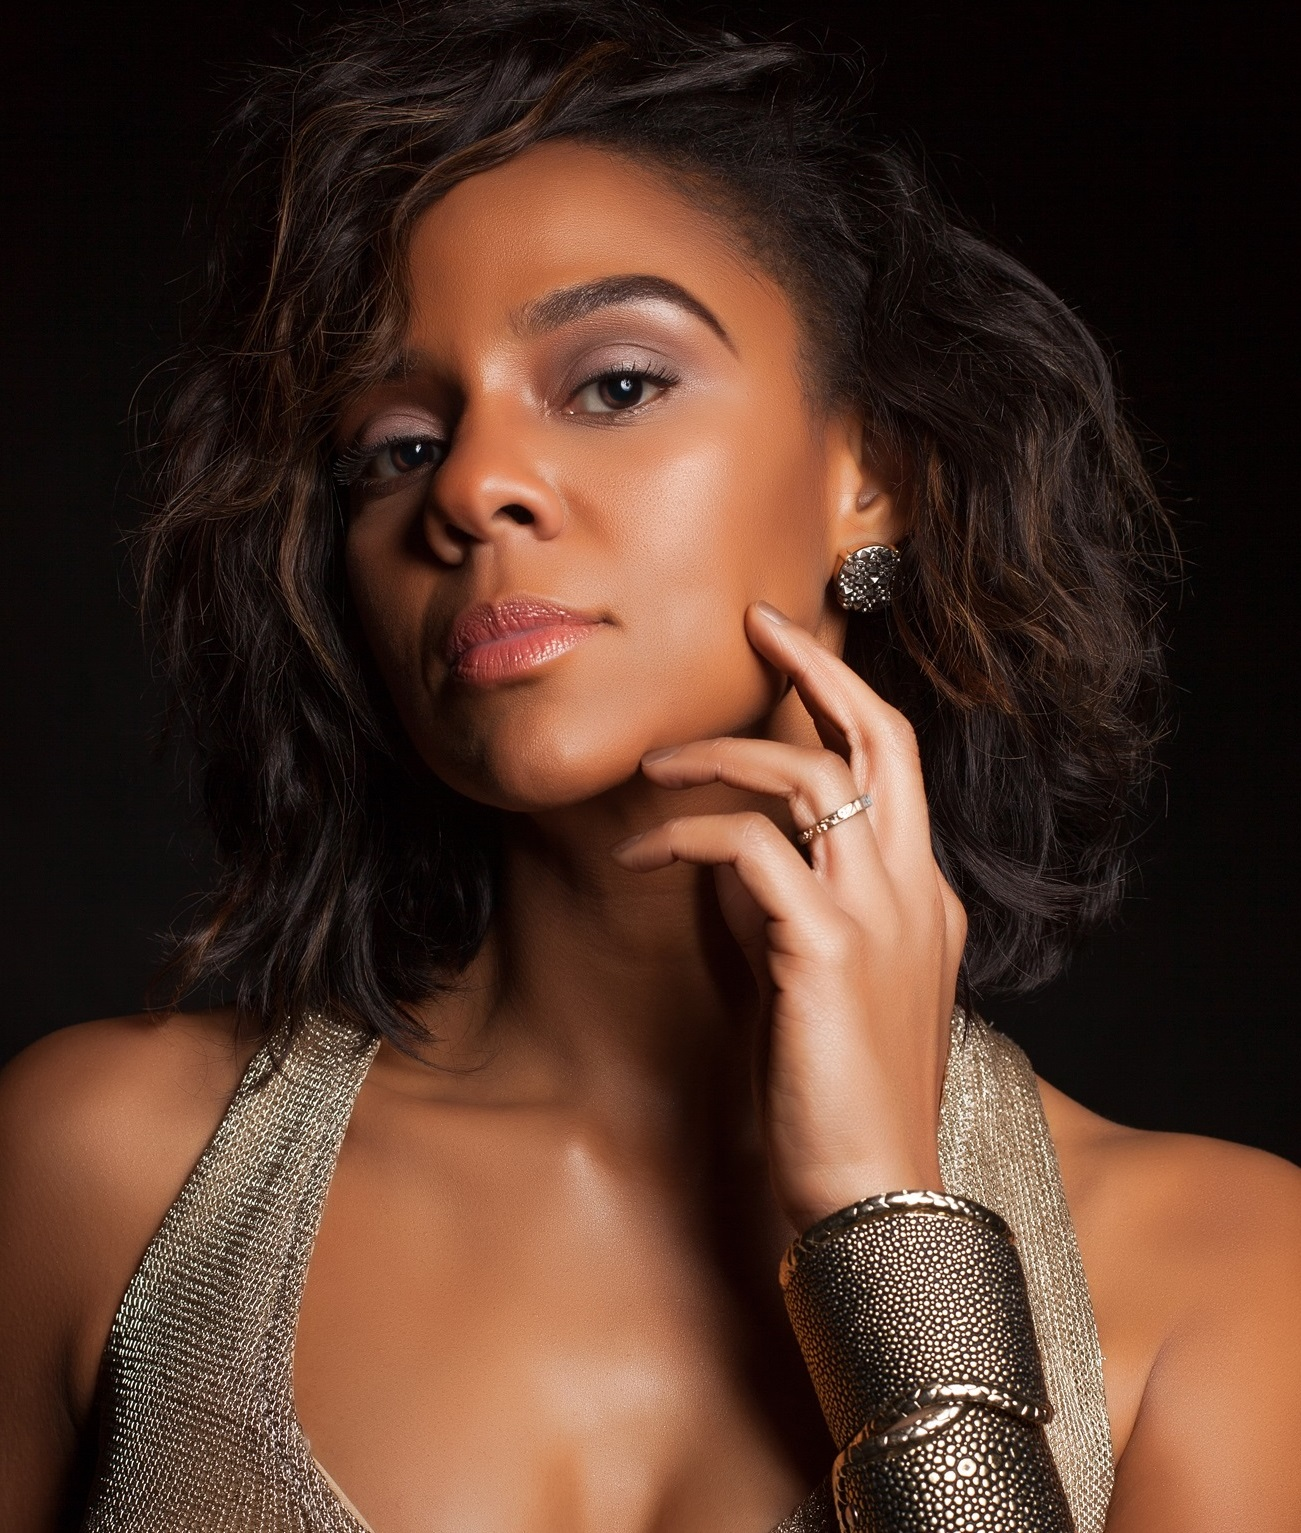 shae williams | neo2soul promotions